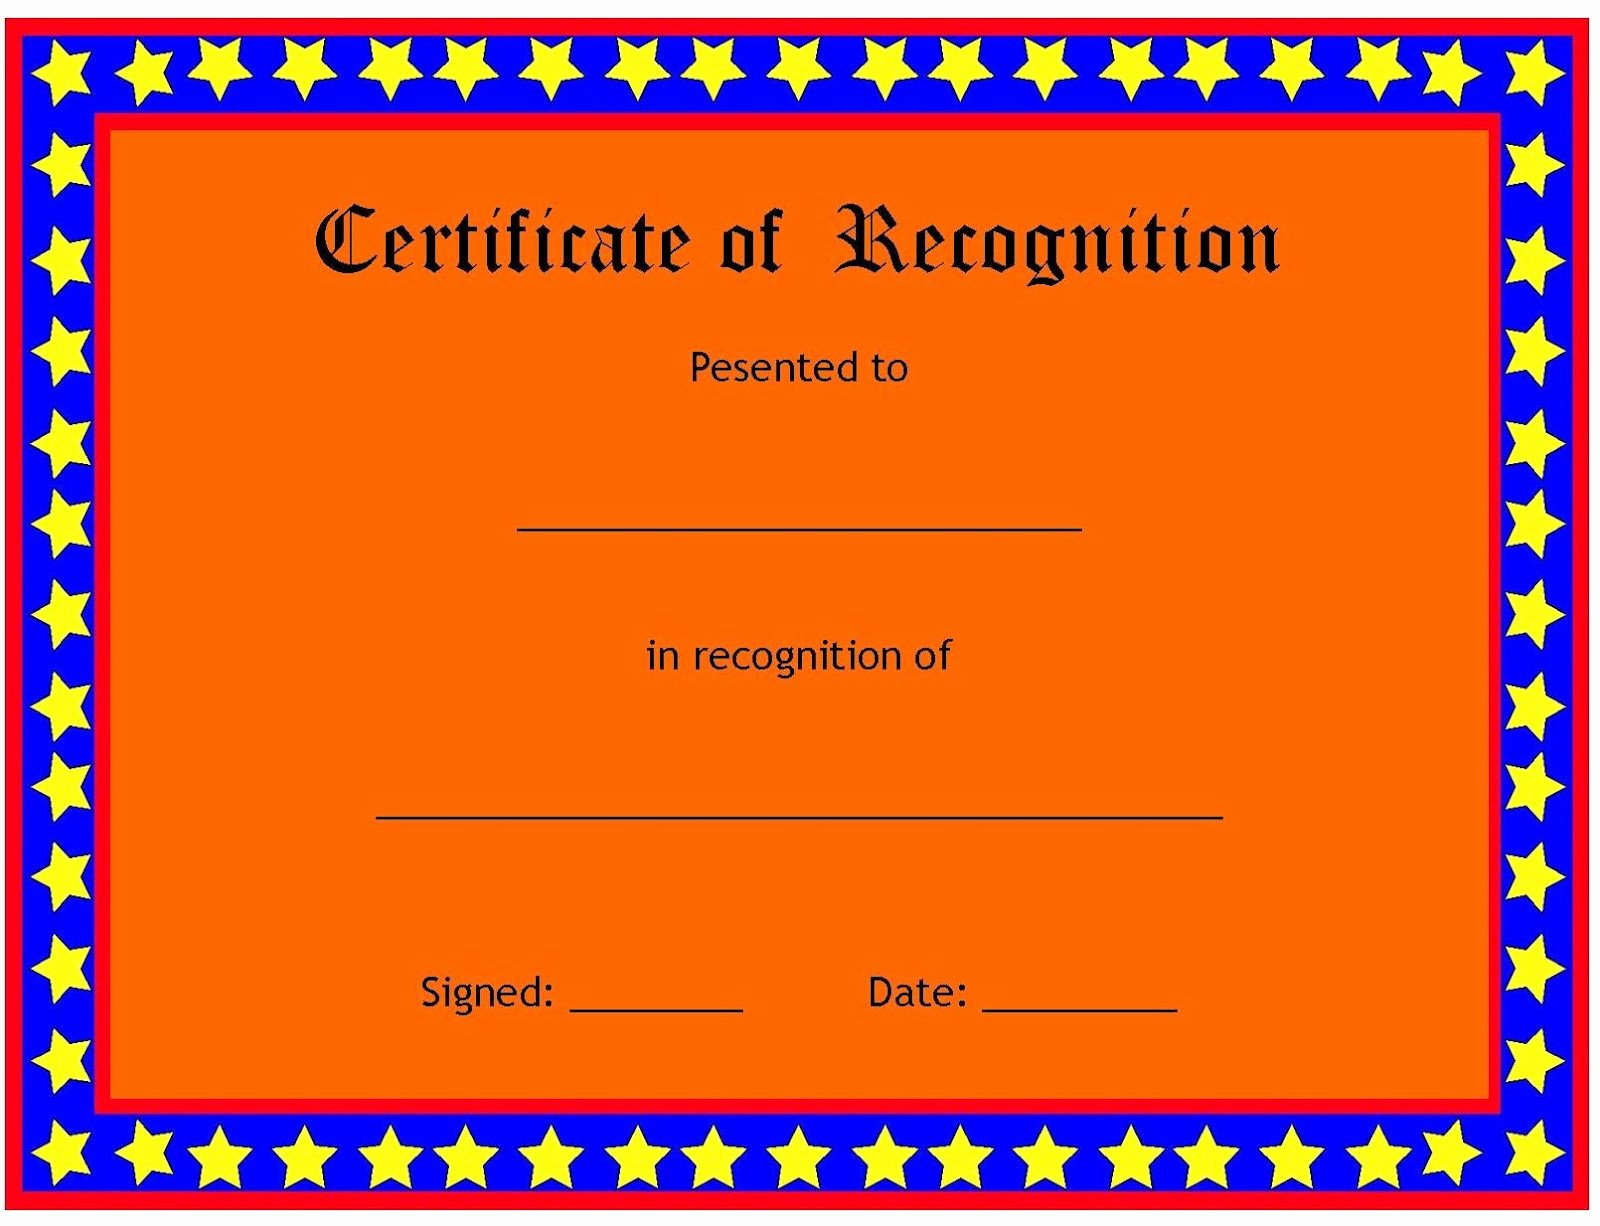 Name A Star Certificate Template Free Best Of A Collection Of Free Certificate Borders and Templates